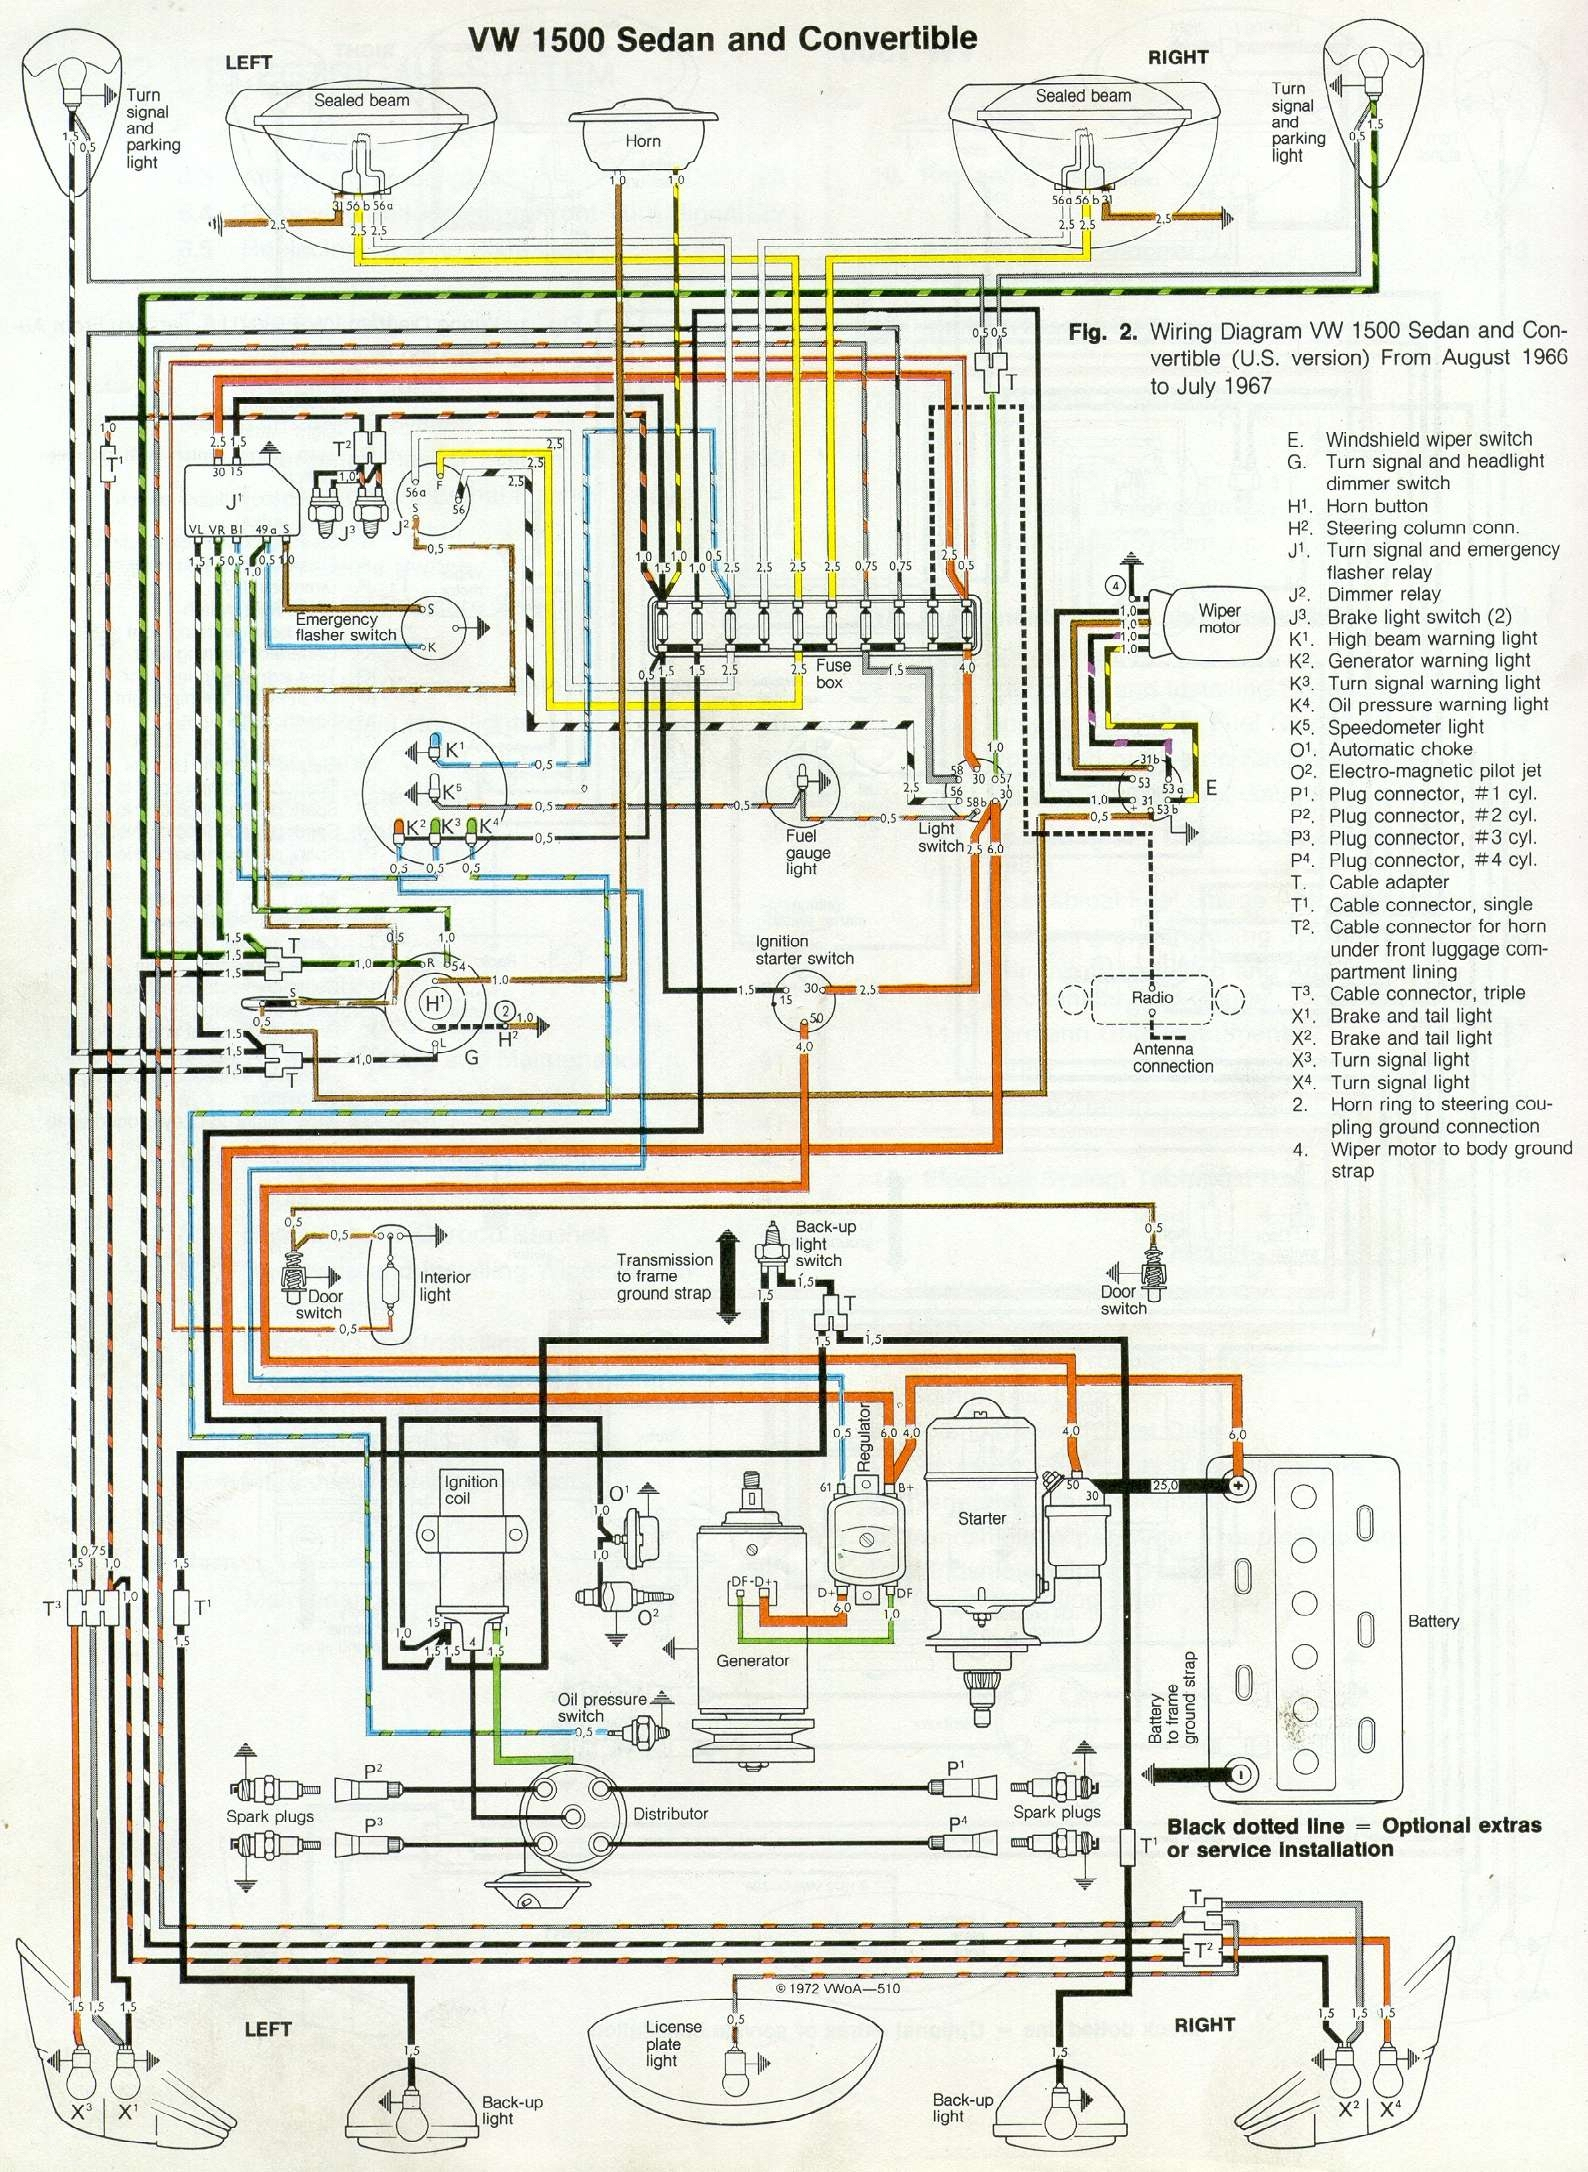 vw beetle alternator wiring diagram vw image vw beetle generator wiring diagram jodebal com on vw beetle alternator wiring diagram